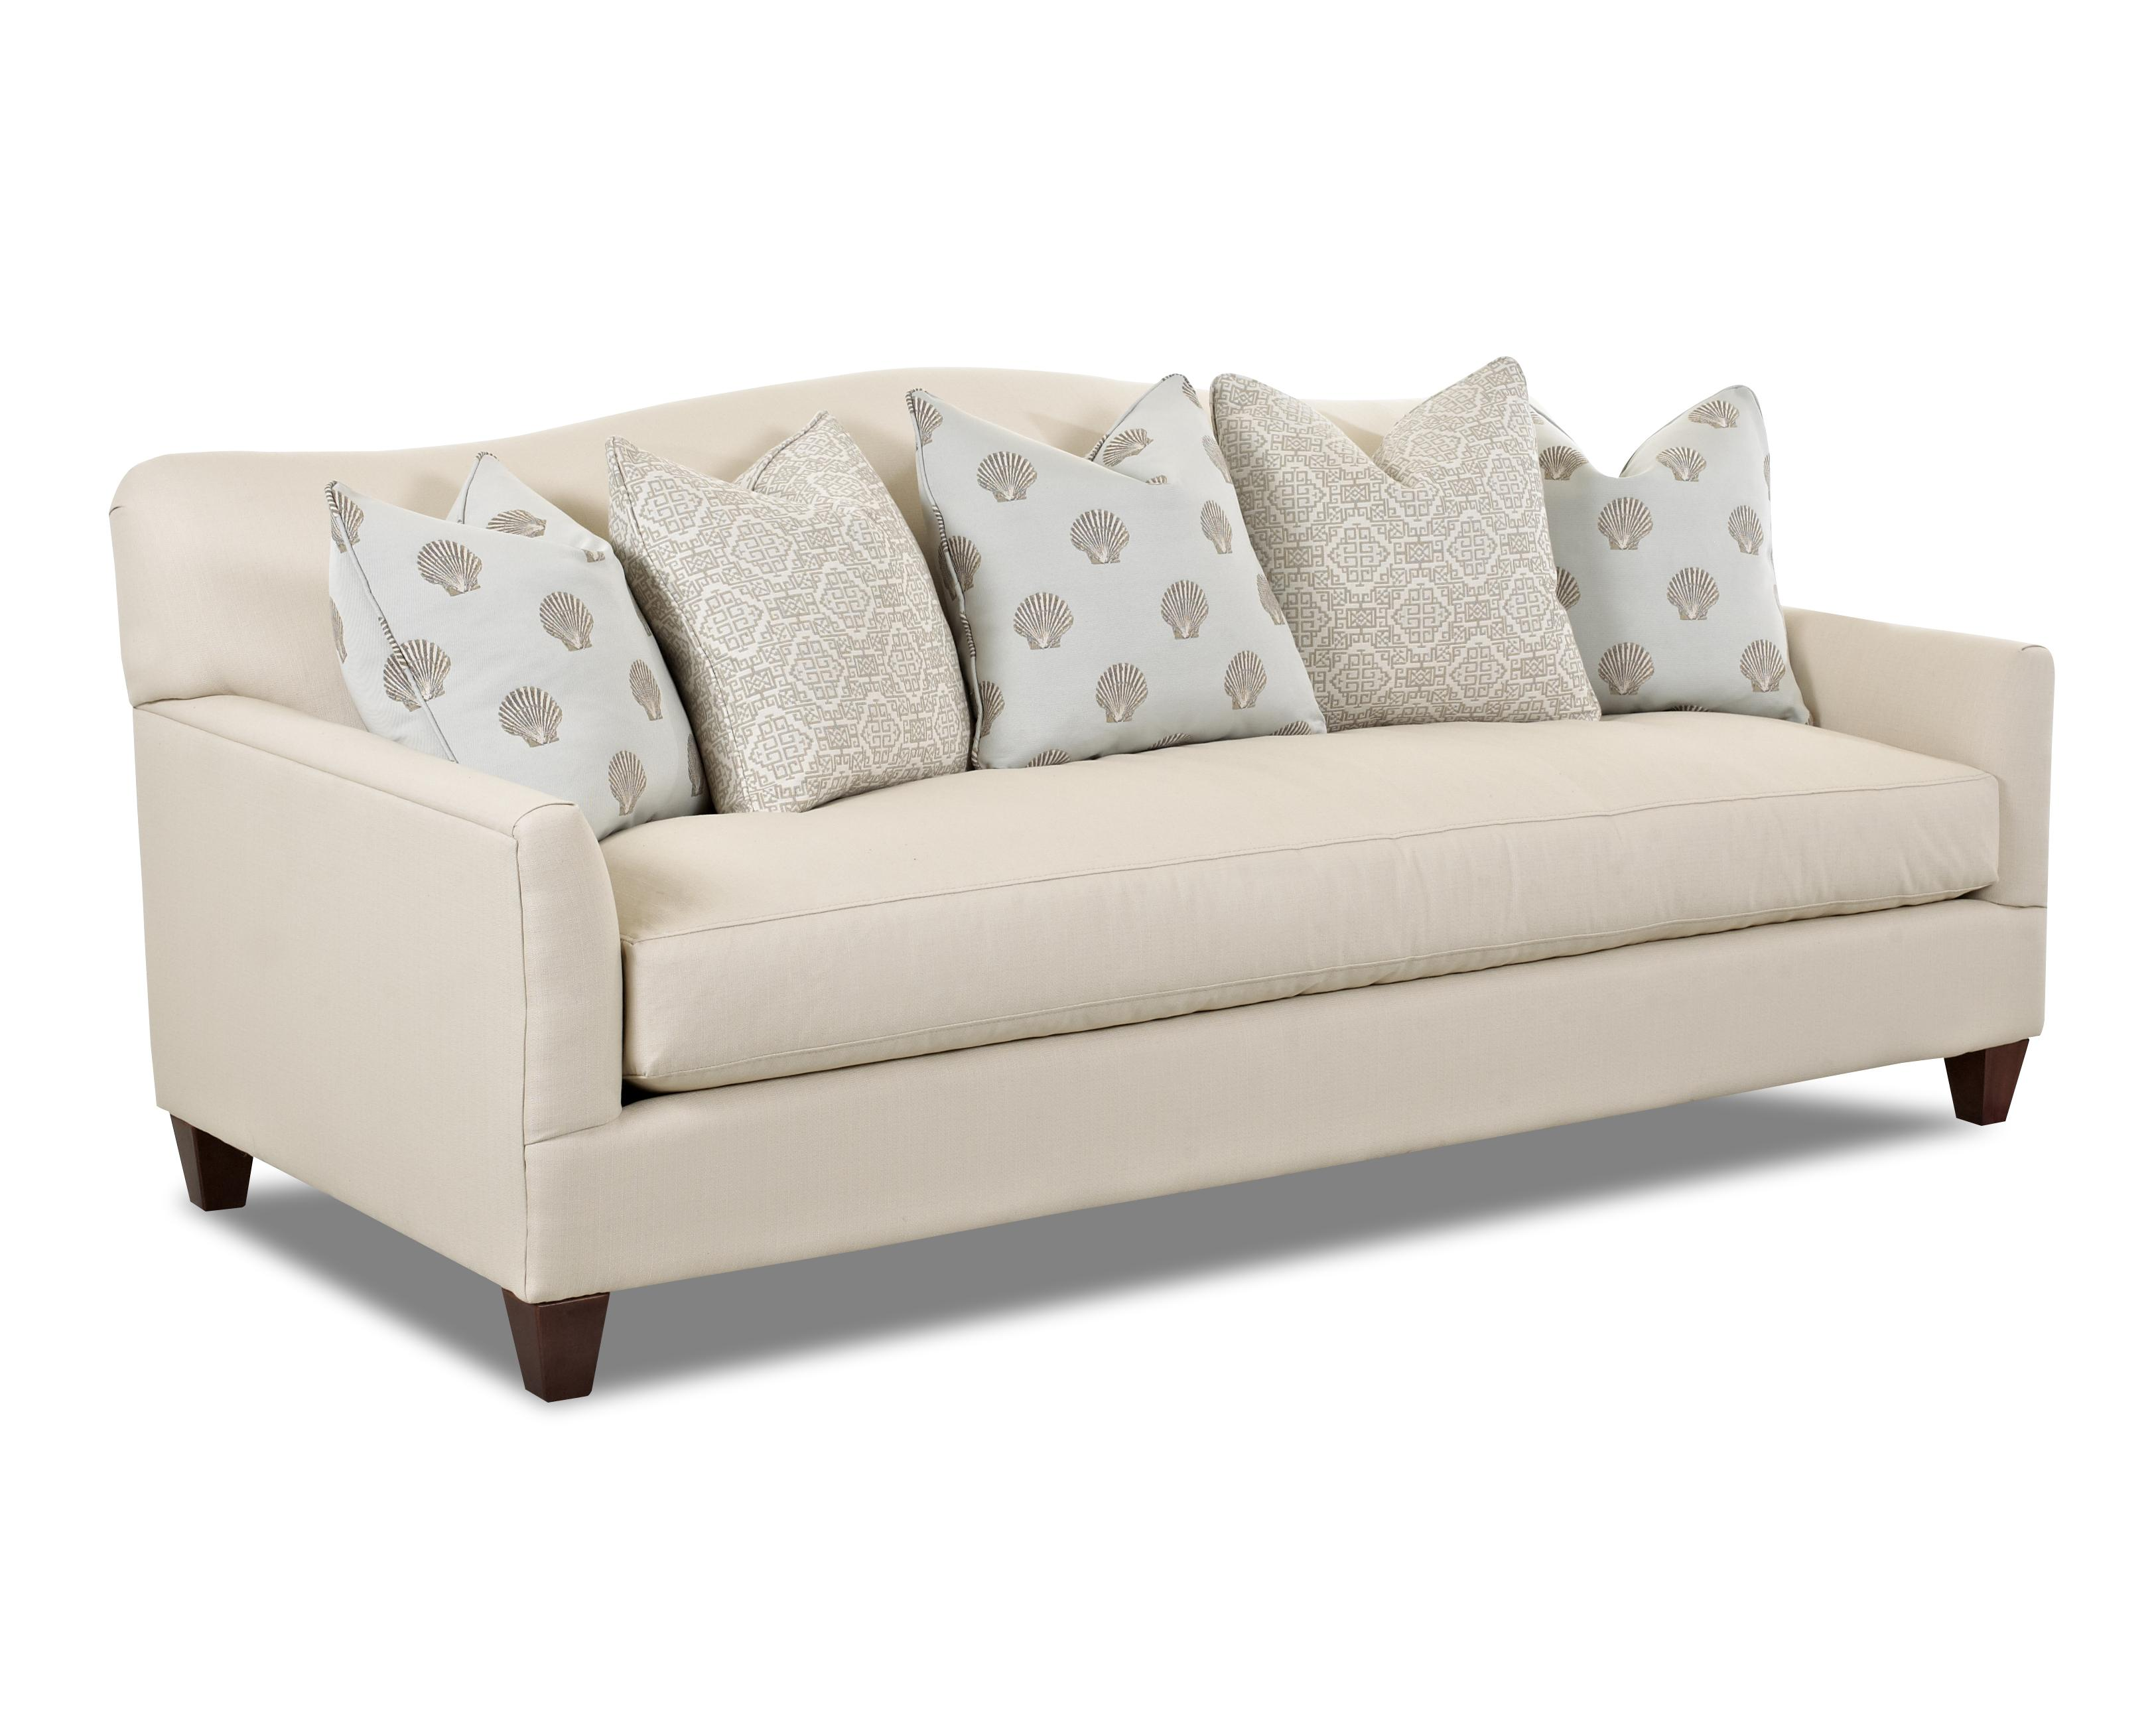 Sofa for Settee seating